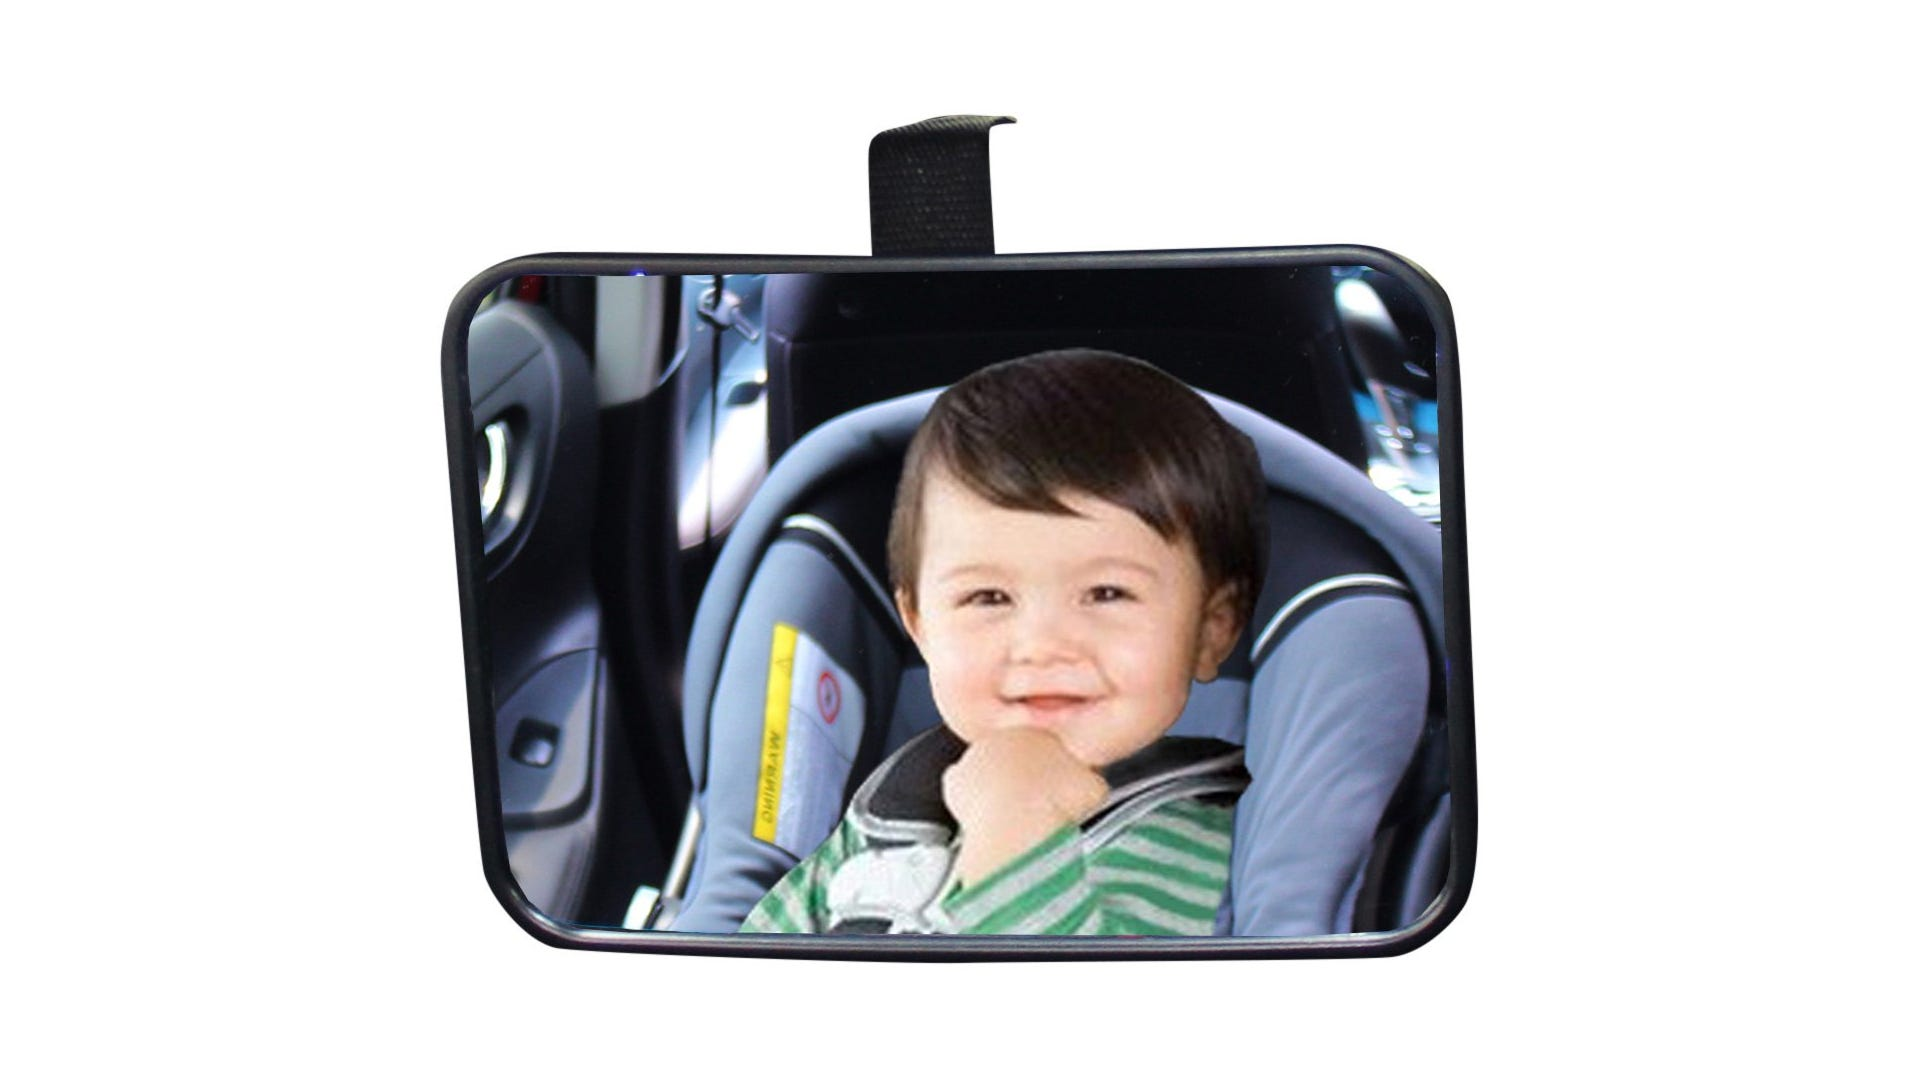 baby car seat mirror viewing child in car seat